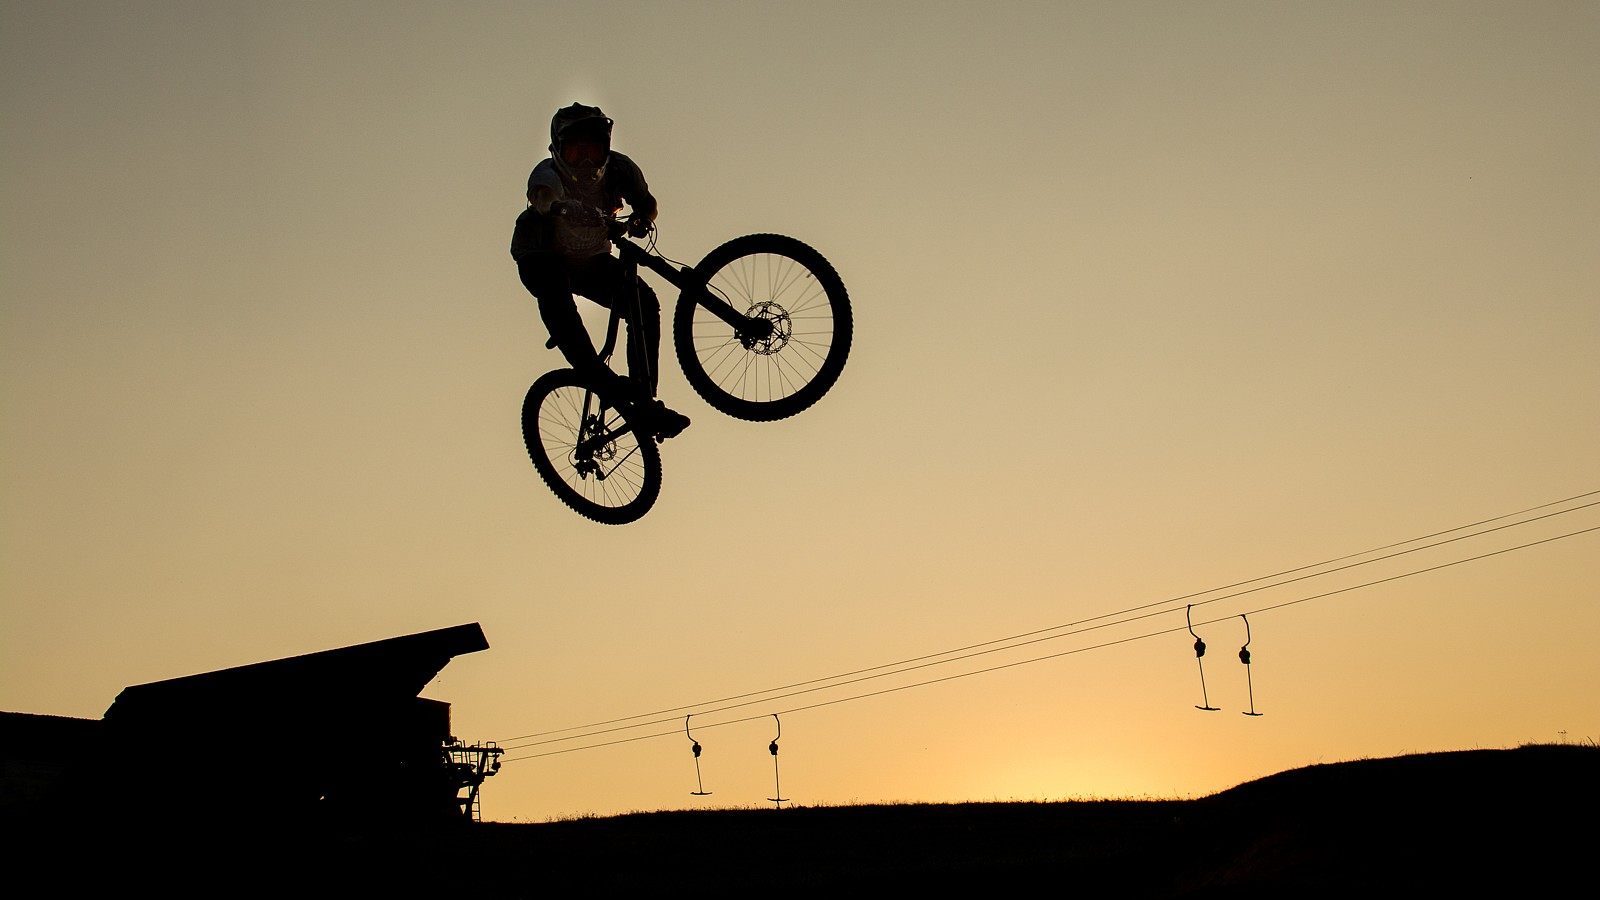 sunset sesh - Banan - Mountain Biking Pictures - Vital MTB